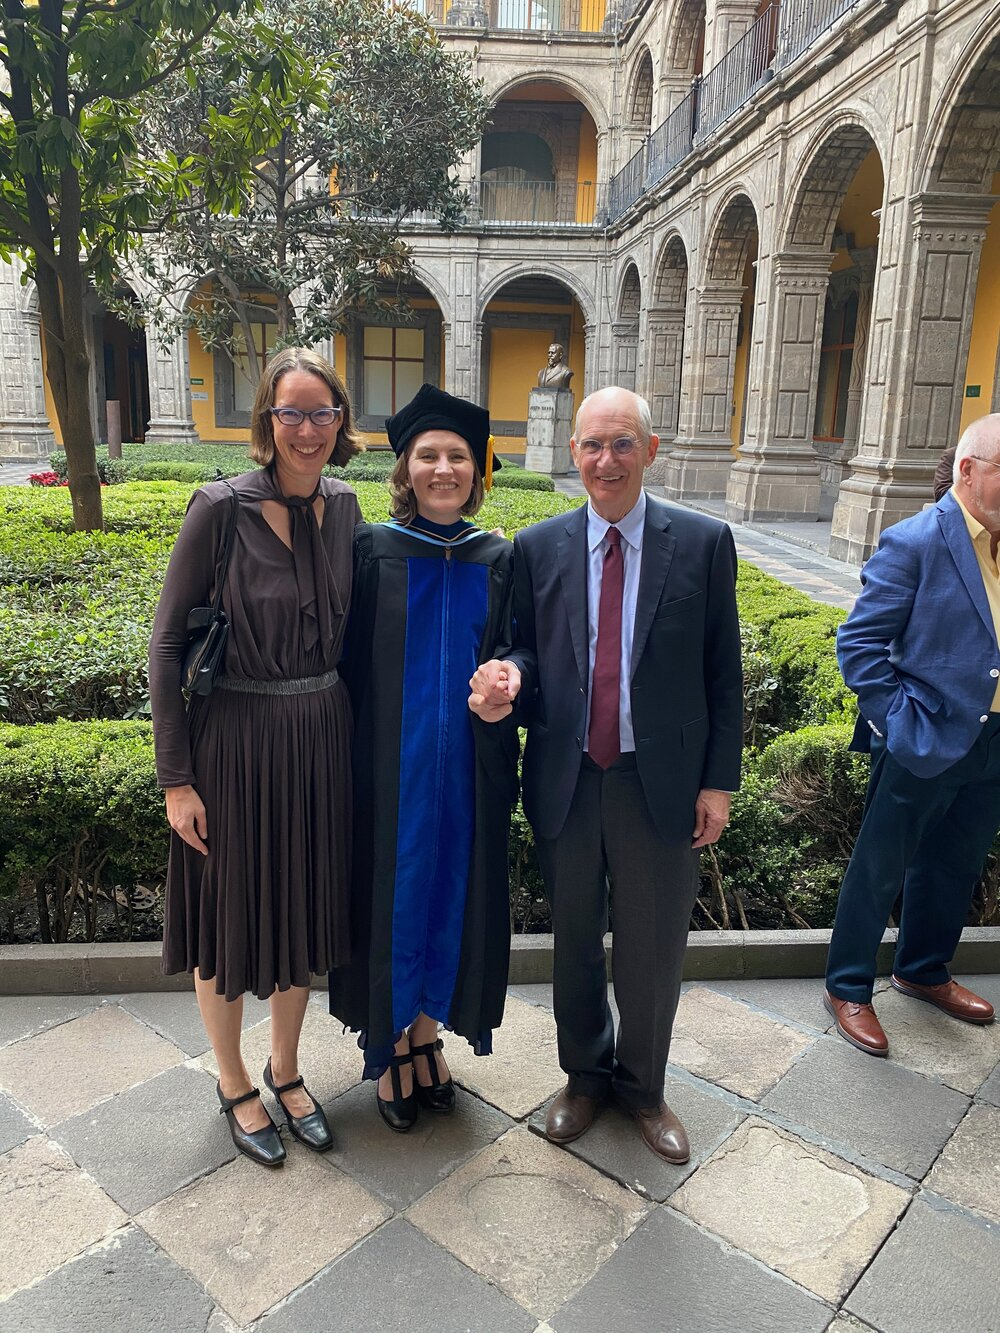 IDSVA's Amy Curtis and George Smith with the newly minted Dr. Christina Barber in the courtyard of el Antiguo Colegio de San Ildefonso. Photo courtesy of Christina Barber